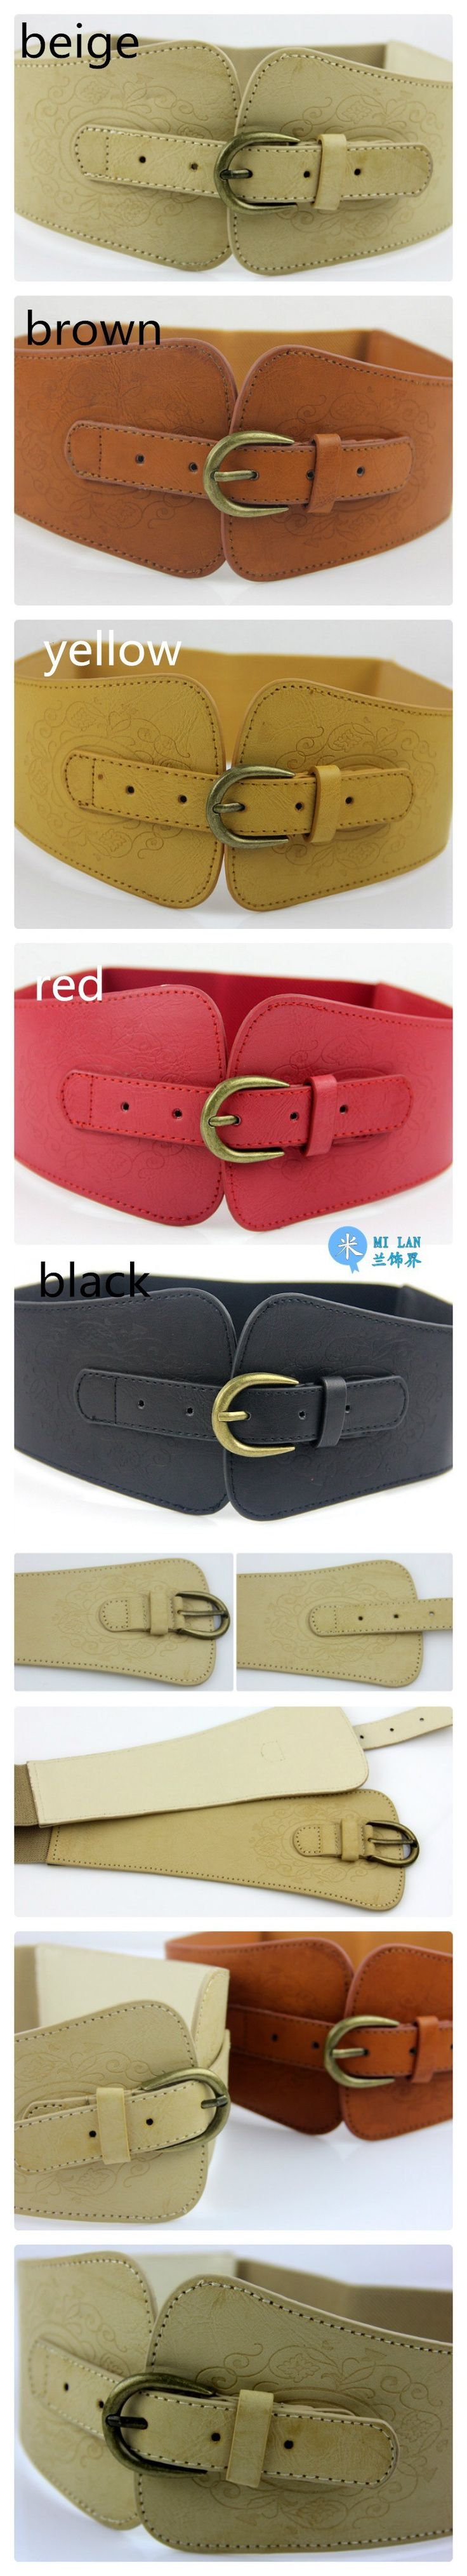 3.15 euro incl shipping Retro totem imitation leather pin buckle wide belt for women,female designer fashion brand waist belt,lady's waist docoration-in Belts & Cum...